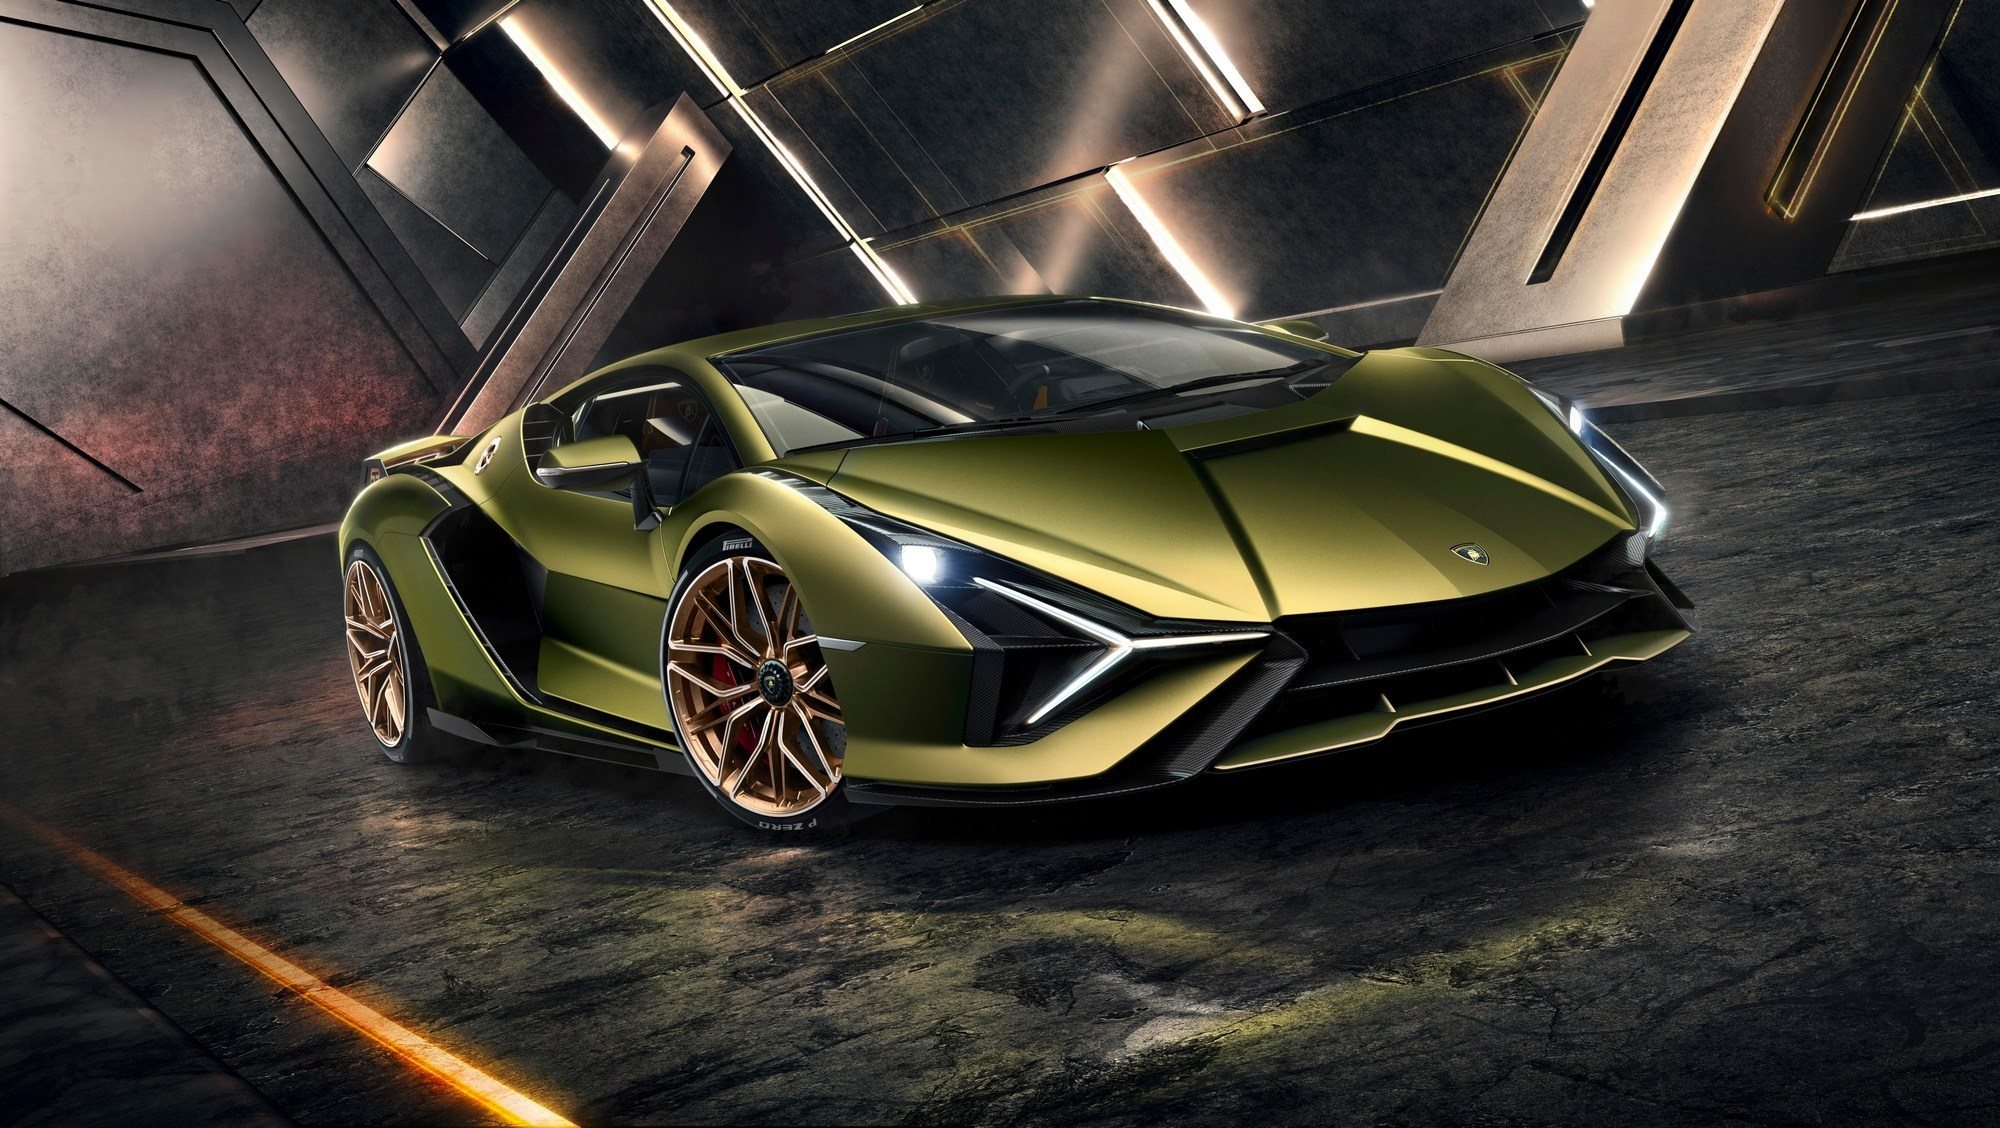 Lamborghini has been demonstrating excellent financial performance lately, especially since its latest release – the SUV Urus – doubled the sales. Despite this, Volkswagen Group is seriously considering selling the Italian marque.